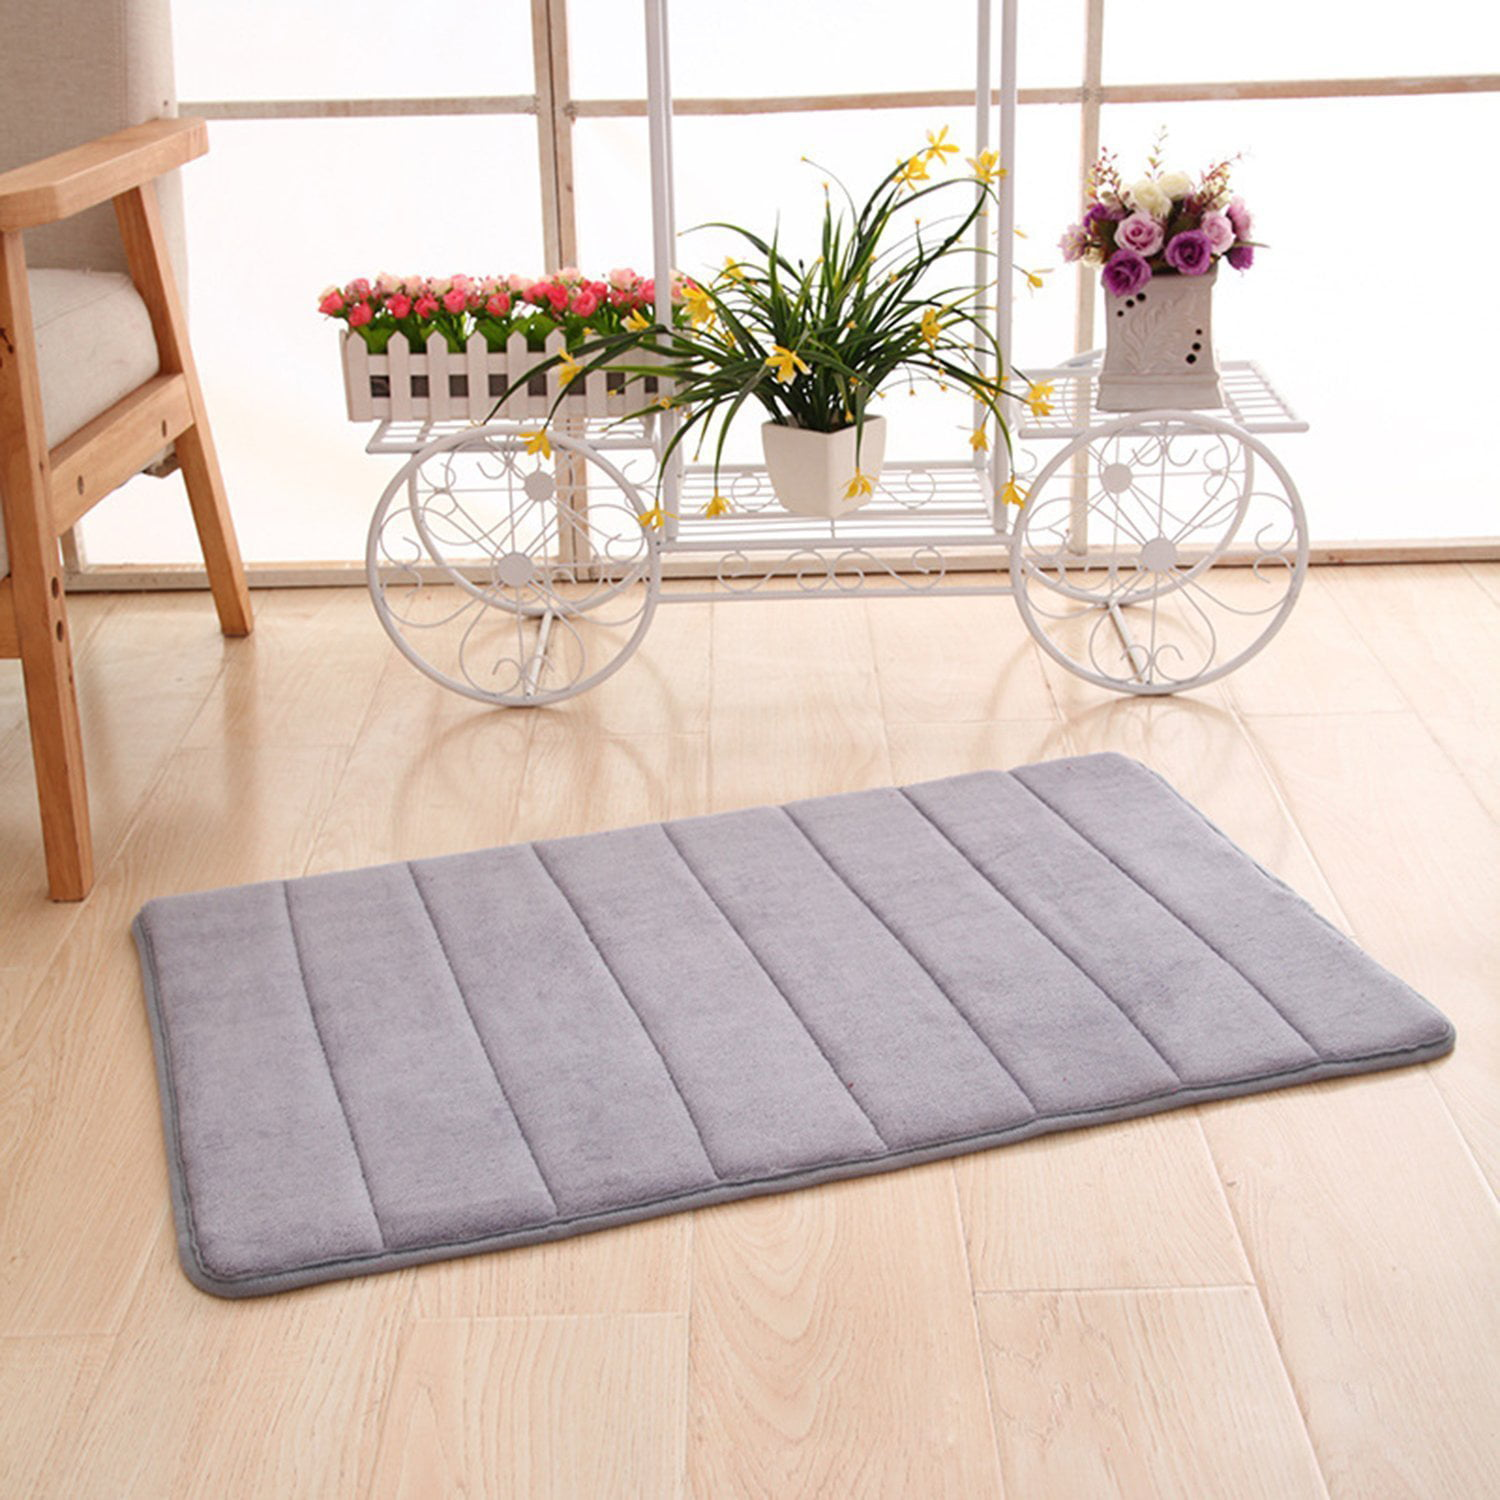 floor doormat memory foam rug kitchen shower non-slip